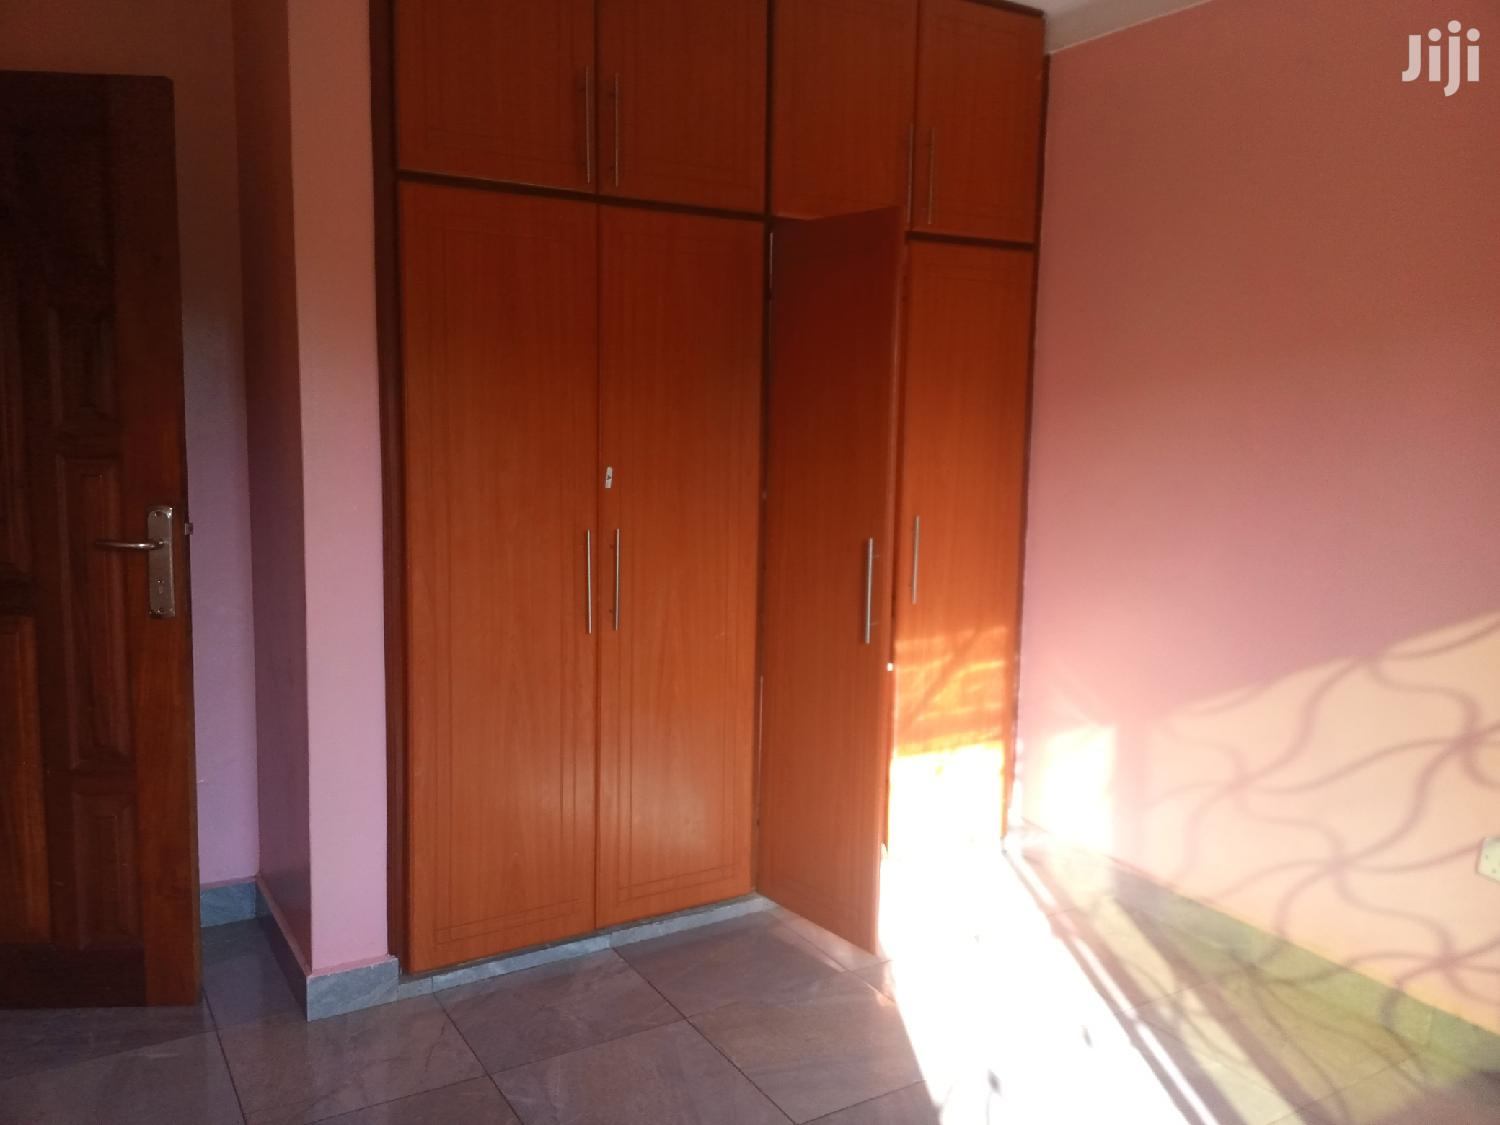 Two Bedroom Apartment For Rent | Houses & Apartments For Rent for sale in Kampala, Central Region, Uganda